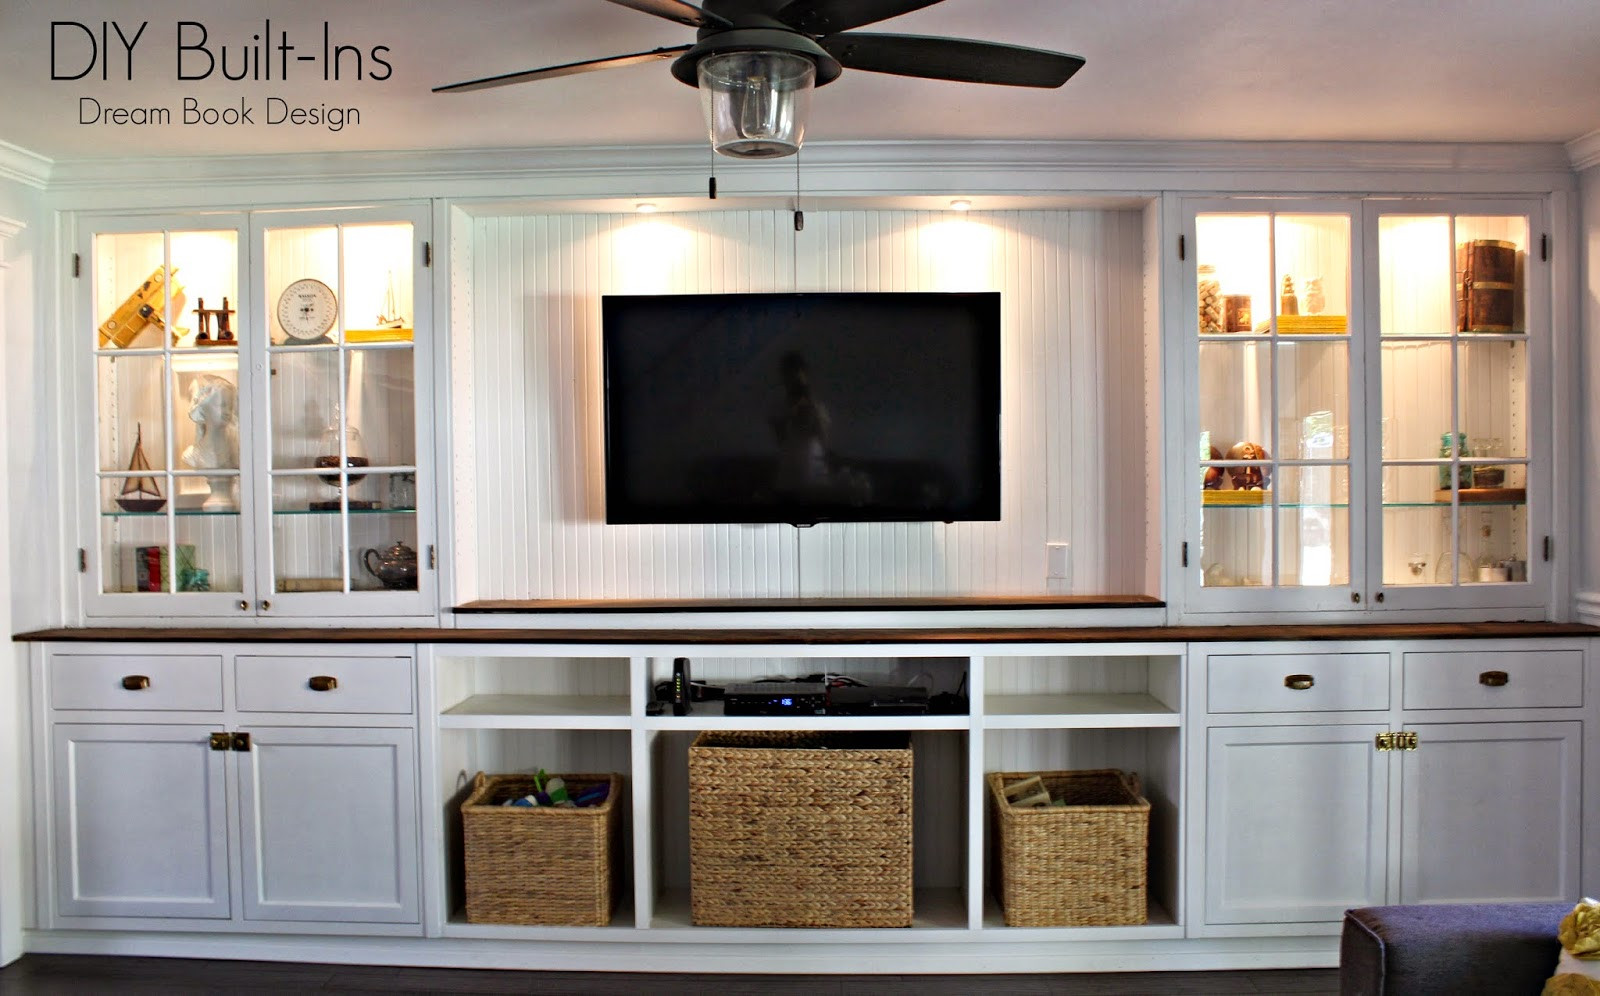 Best ideas about DIY Built Ins . Save or Pin DIY Built Ins Dream Book Design Now.